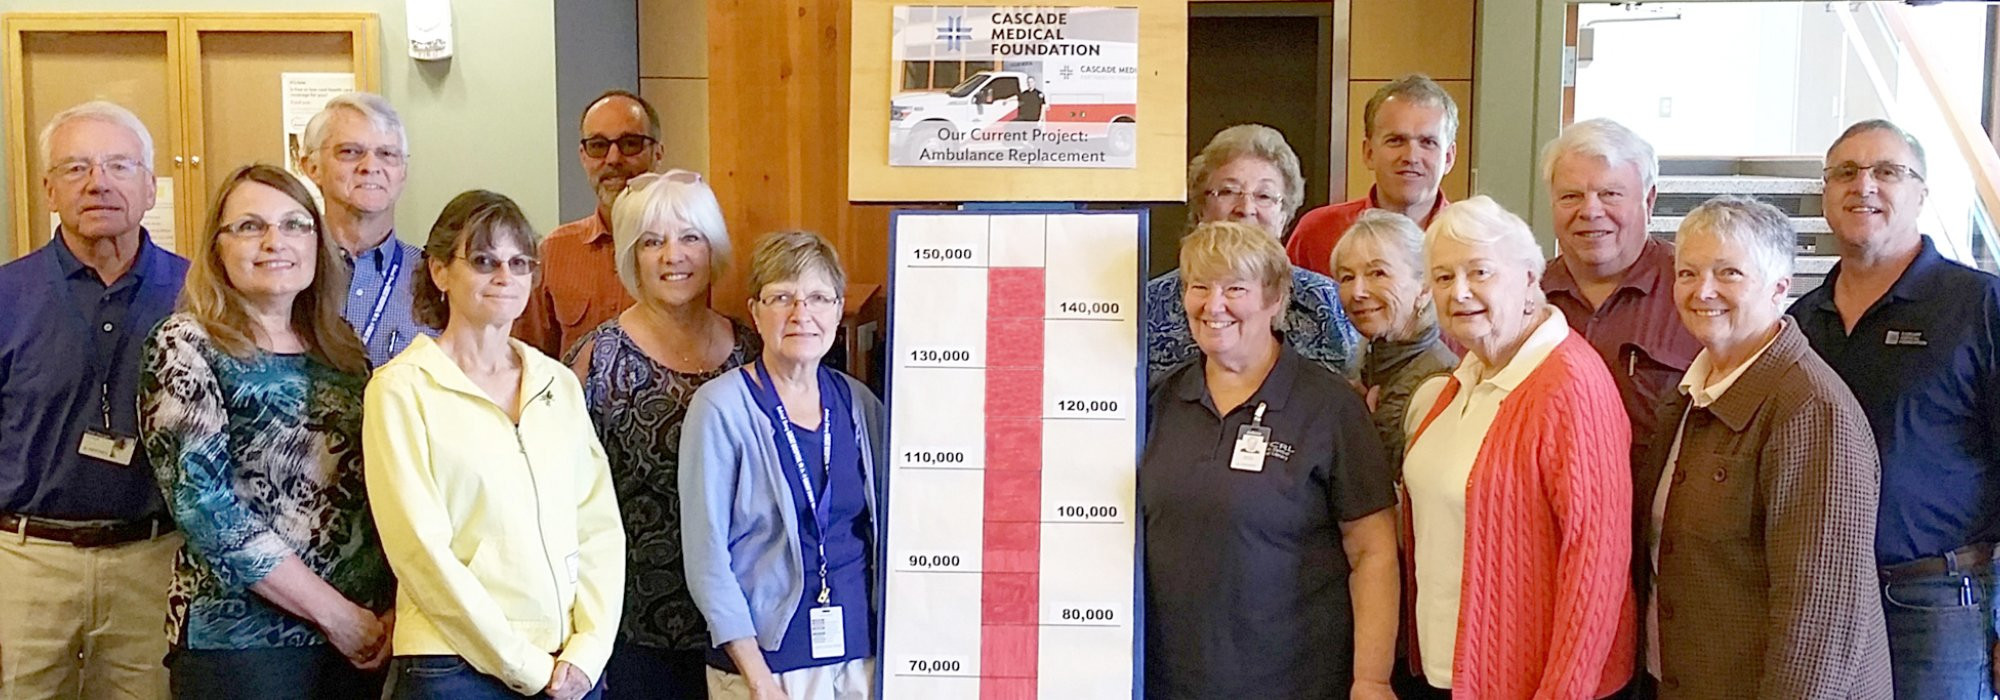 Members of the Cascade Medical Foundation reach their fundraising goal to buy a new ambulance.